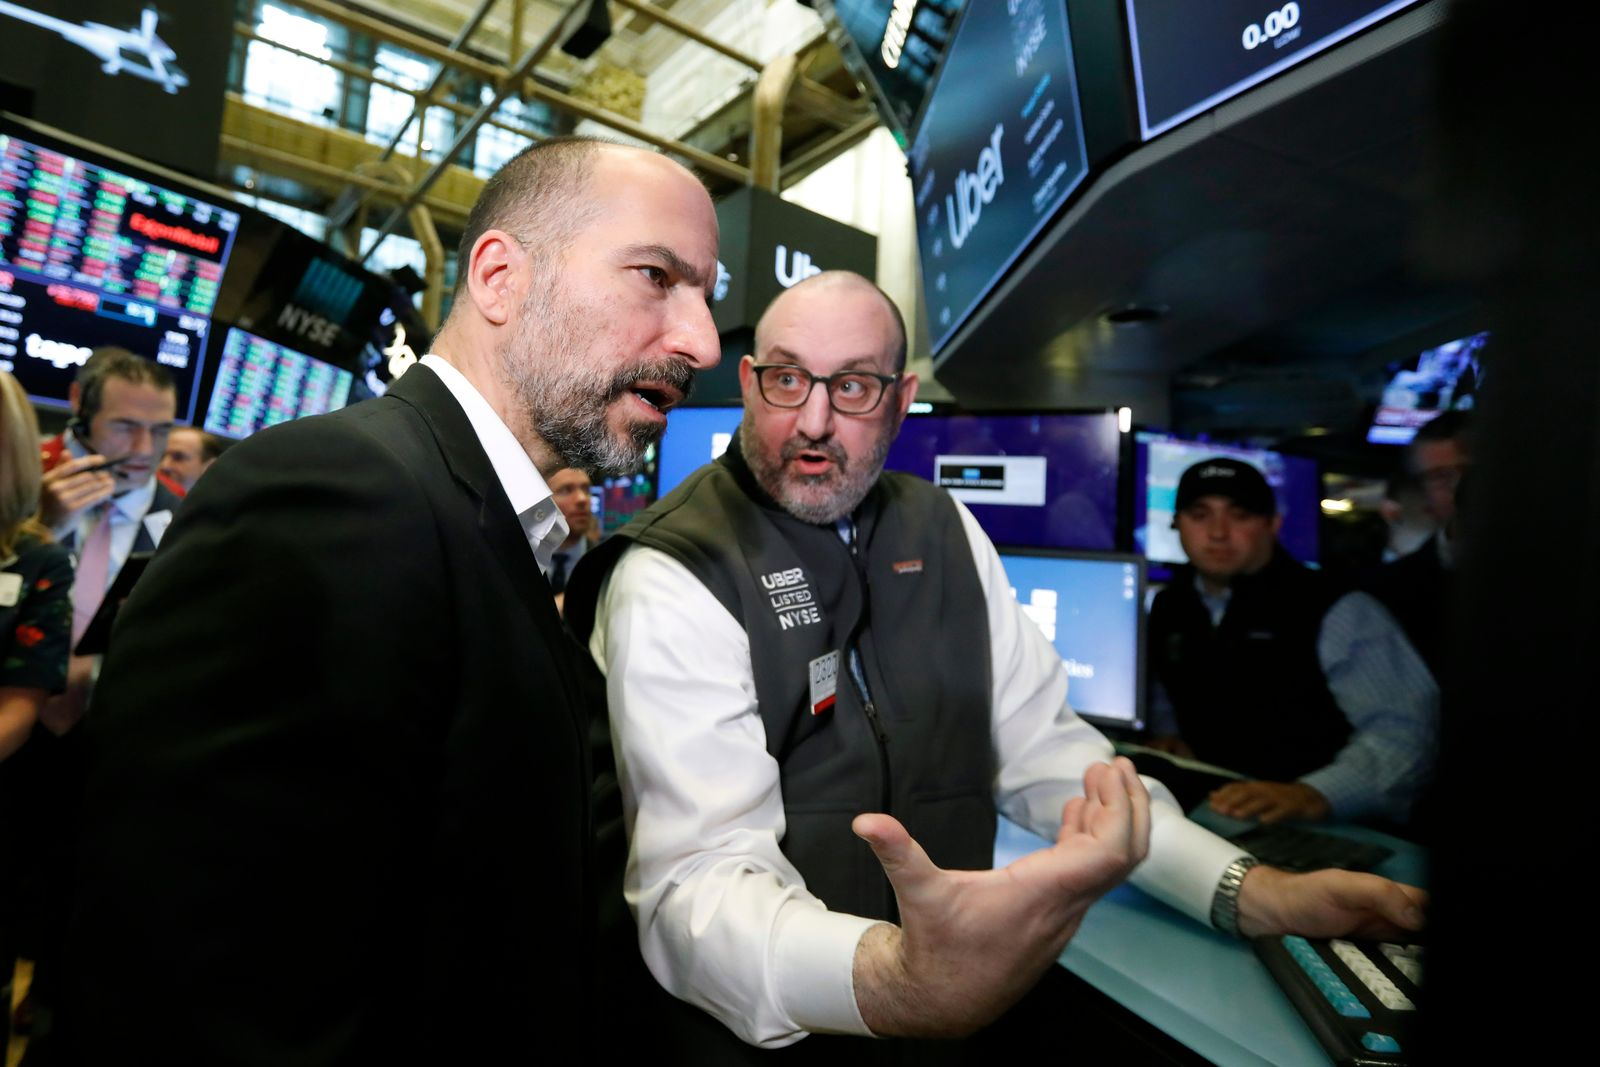 Uber CEO Dara Khosrowshahi, left, talks with specialist Peter Giacchi before his stock begins trading at the New York Stock Exchange, as his company makes its initial public offering, Friday, May 10, 2019. (AP Photo/Richard Drew)